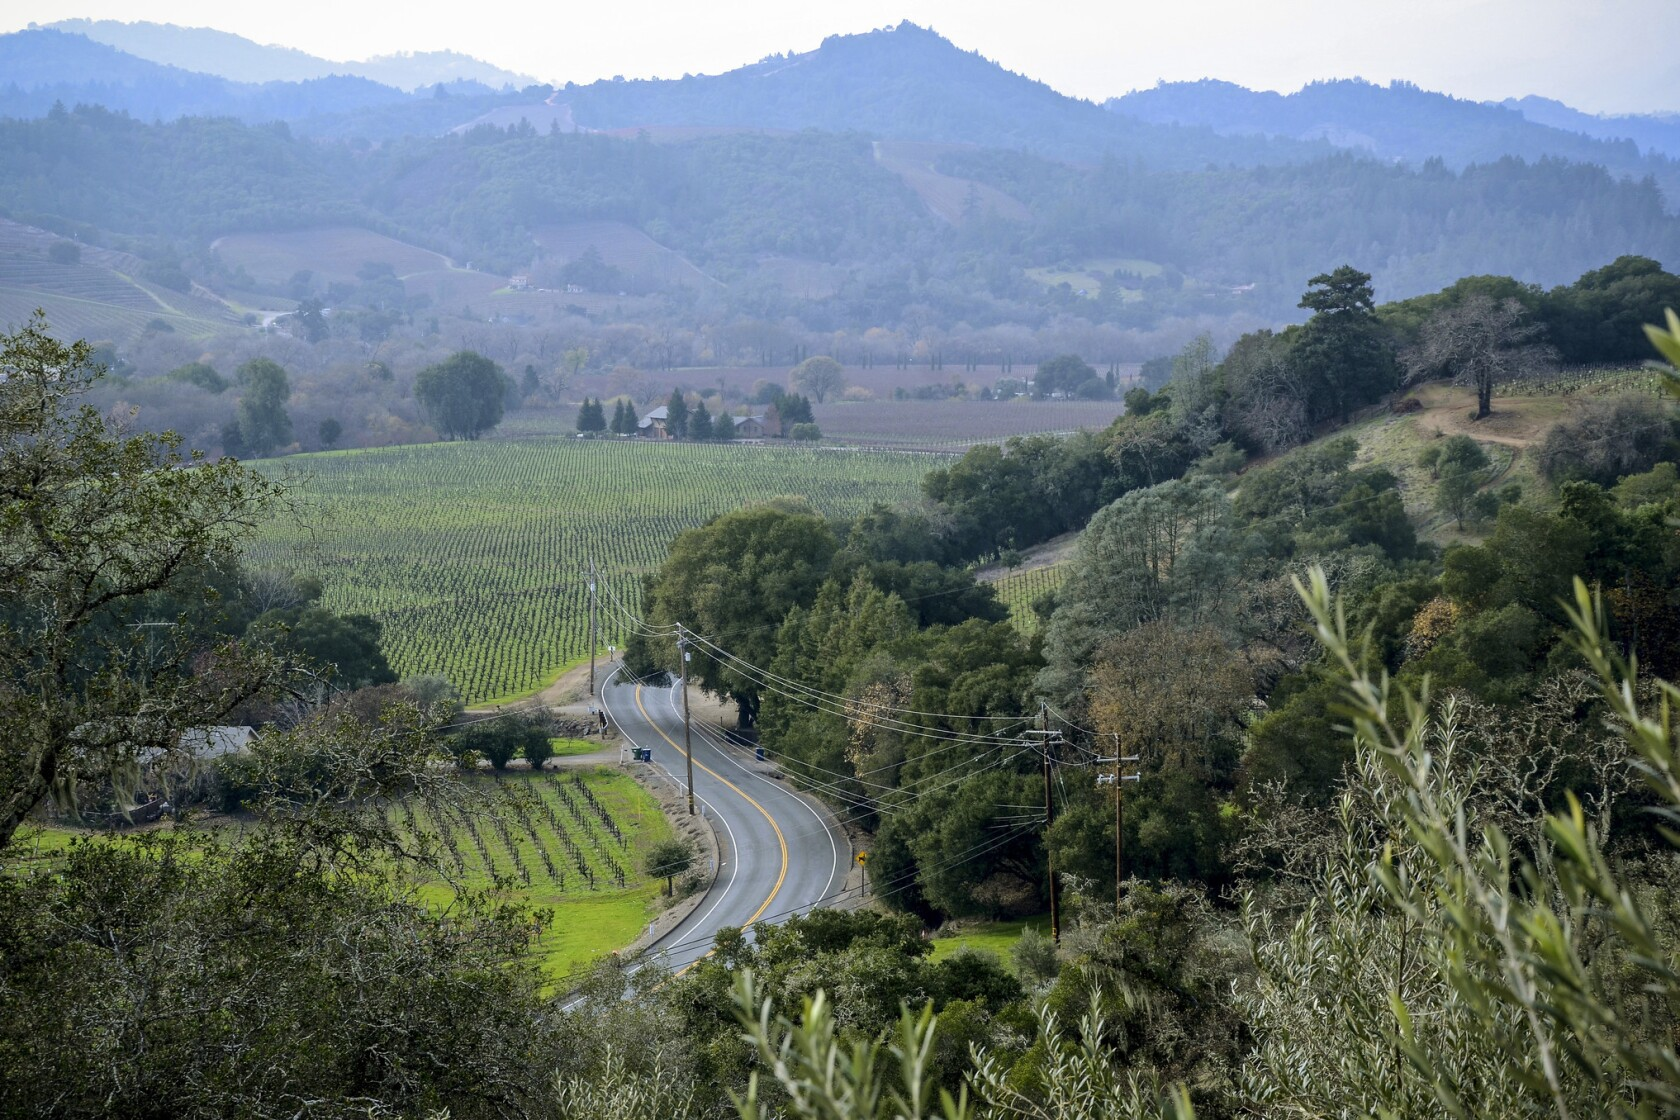 After the fires, the road back to Napa and Sonoma counties